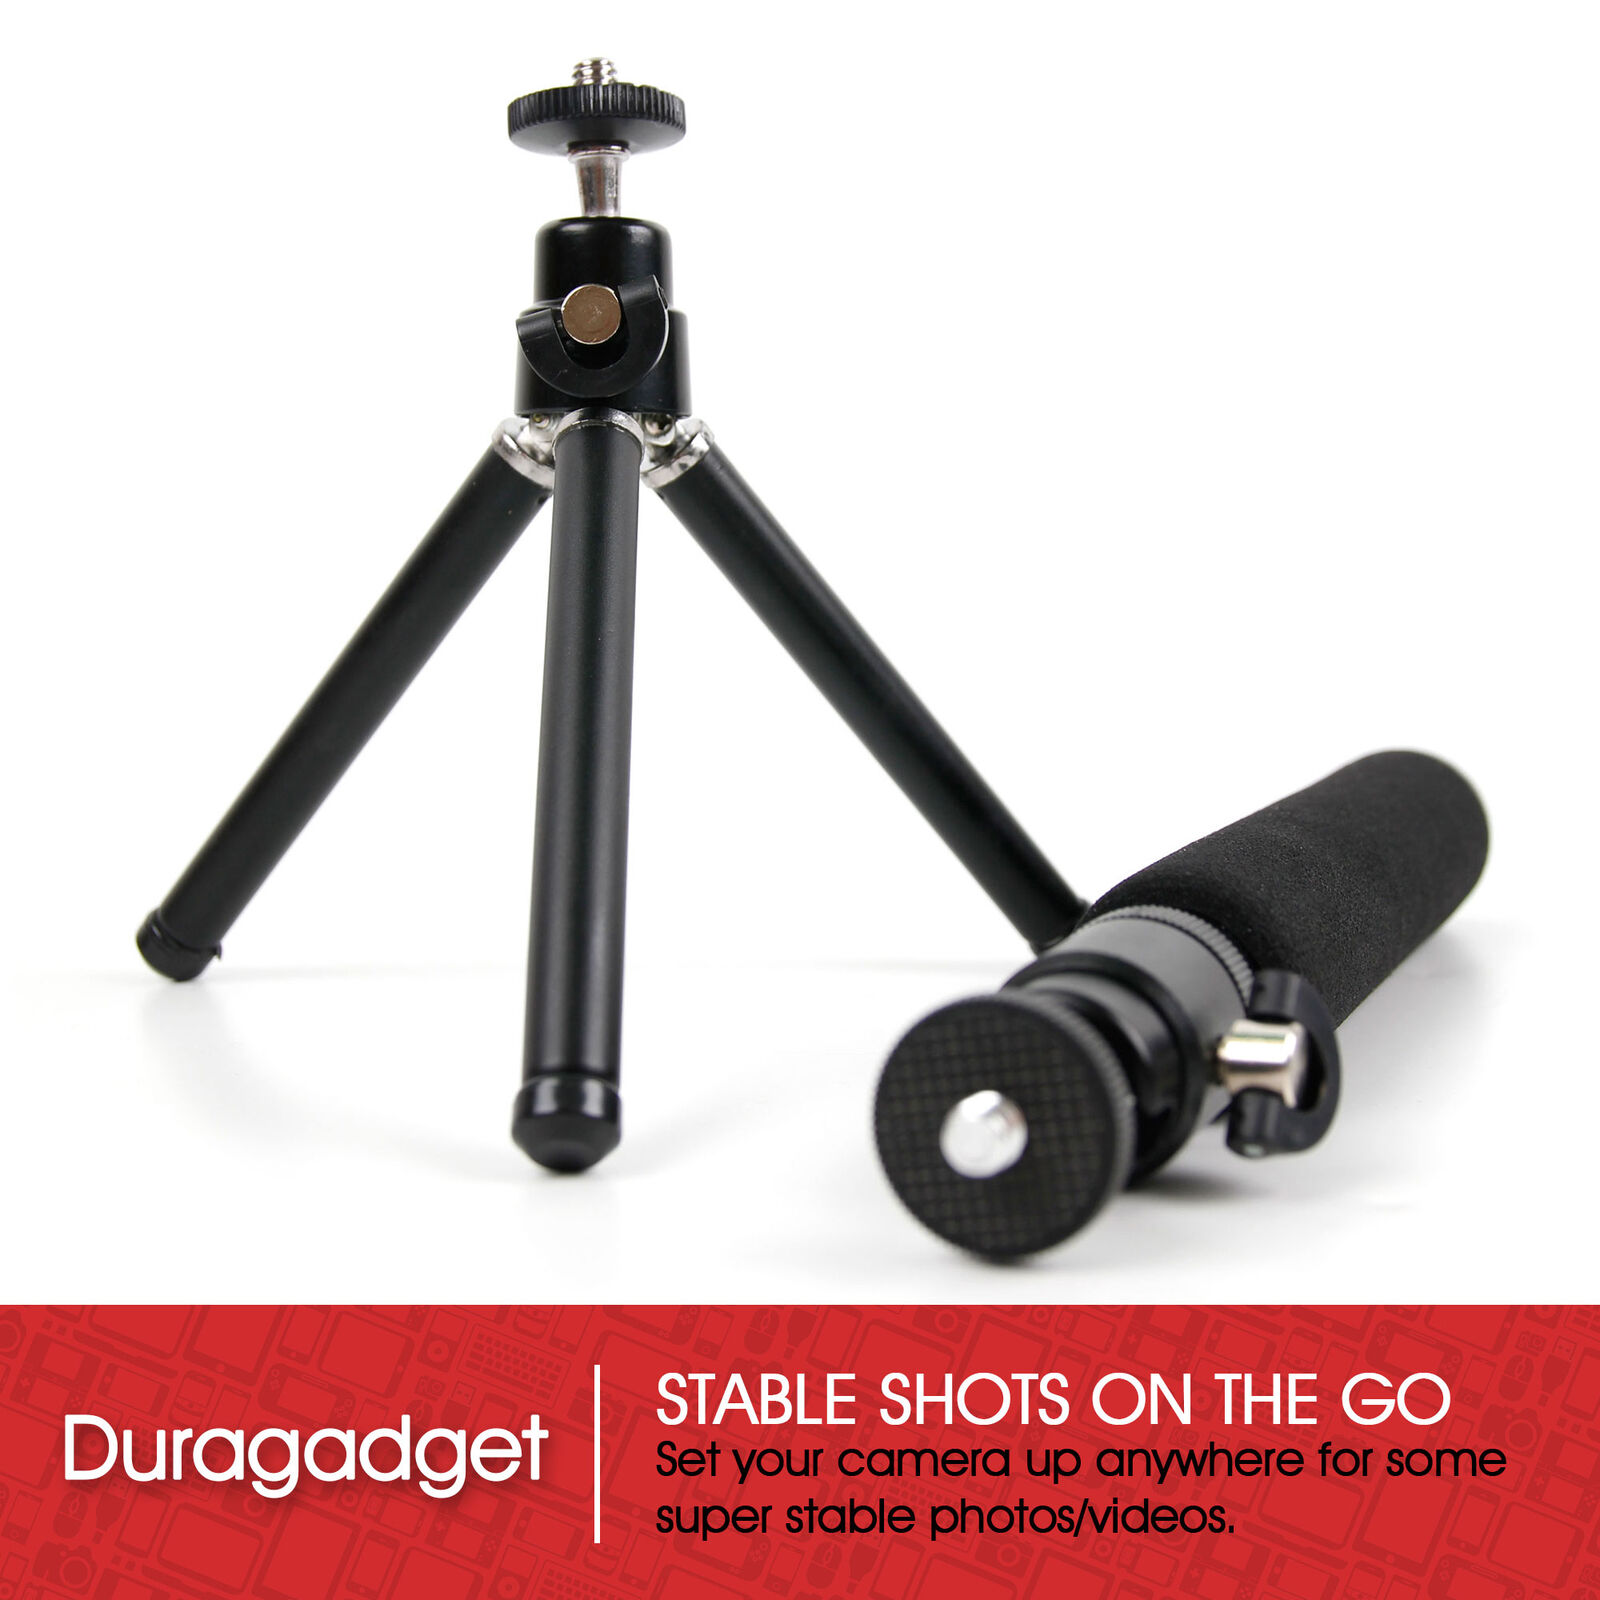 DURAGADGET Hands Free Lightweight Camera Mount With Removable /& Extendable Legs For The New Samsung Galaxy Camera 2